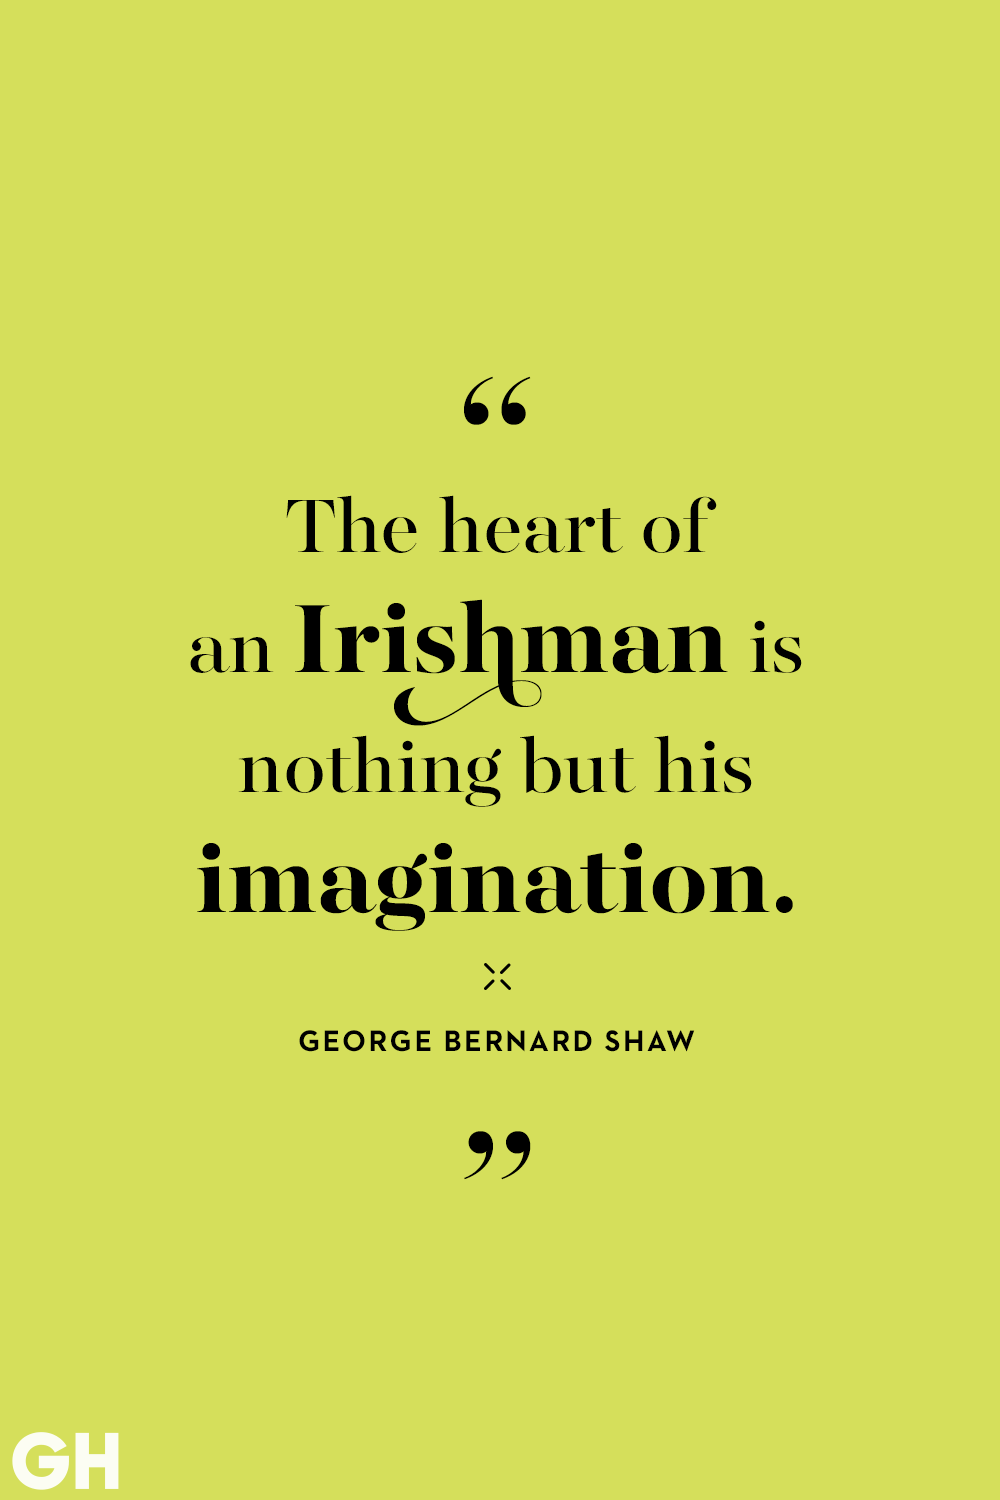 20 St Patricks Day Quotes Best Irish Sayings For St Paddys Day